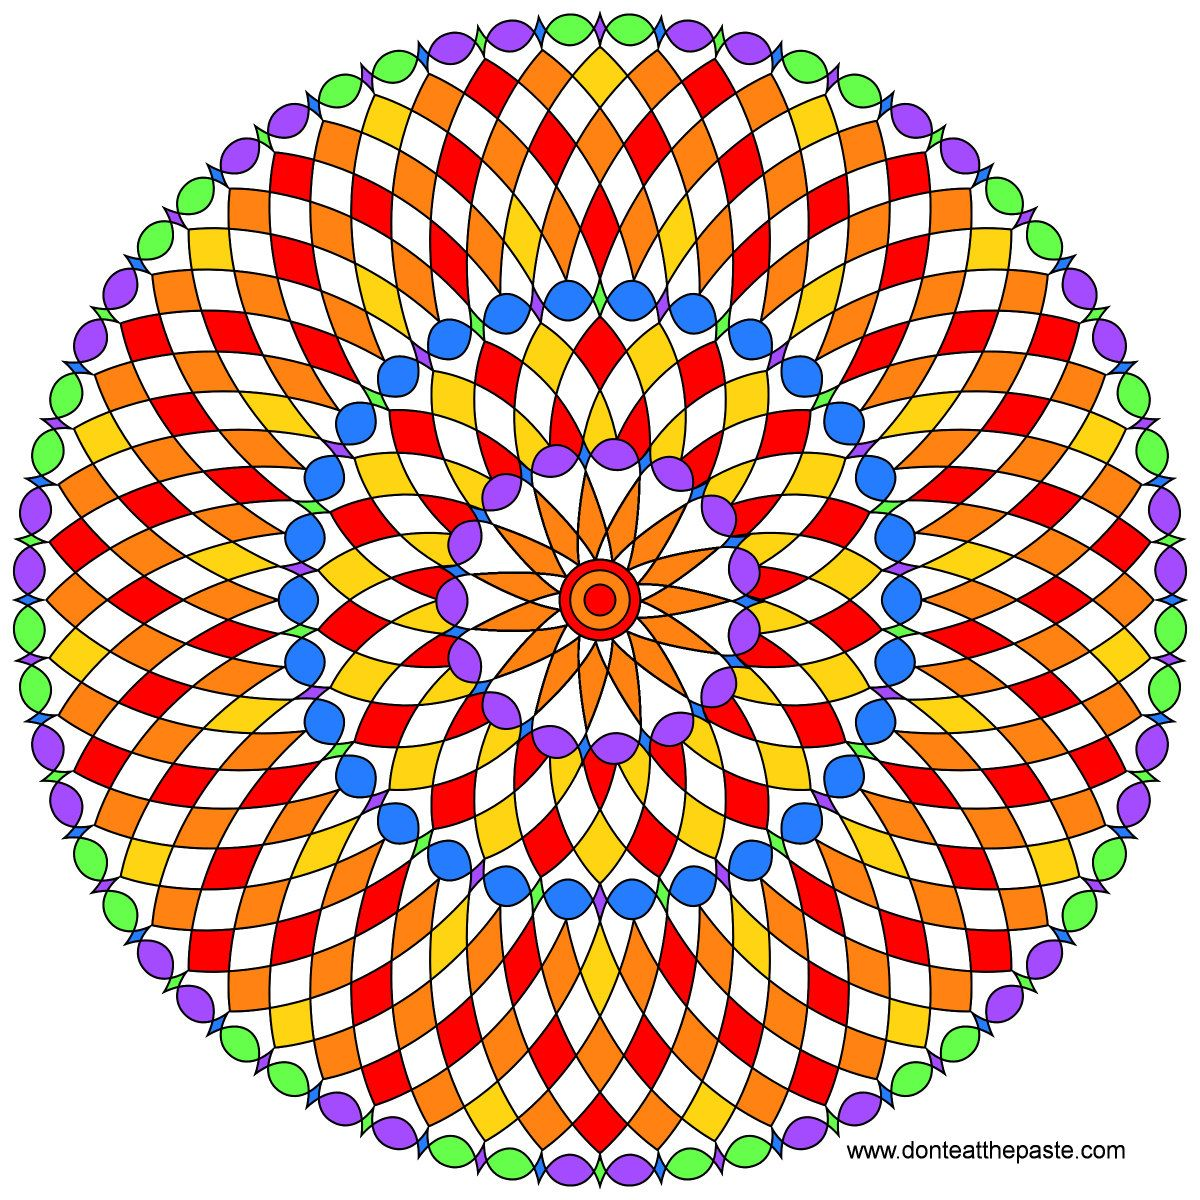 1200x1200 A New Mandala To Color Blank Versions Avail In Png And Jpg Search